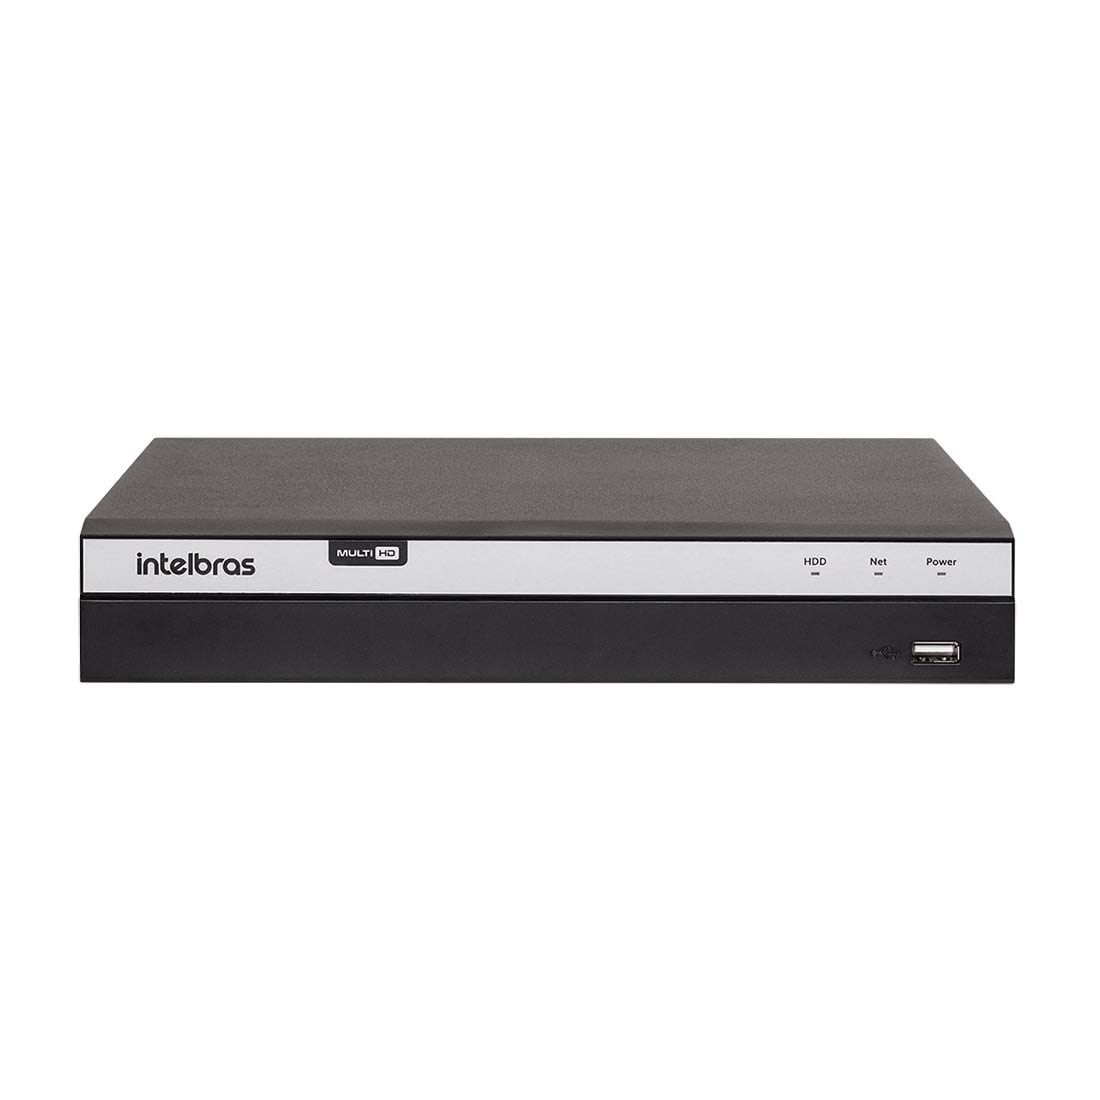 STAND ALONE INTELBRAS 8 CANAIS MHDX 3108